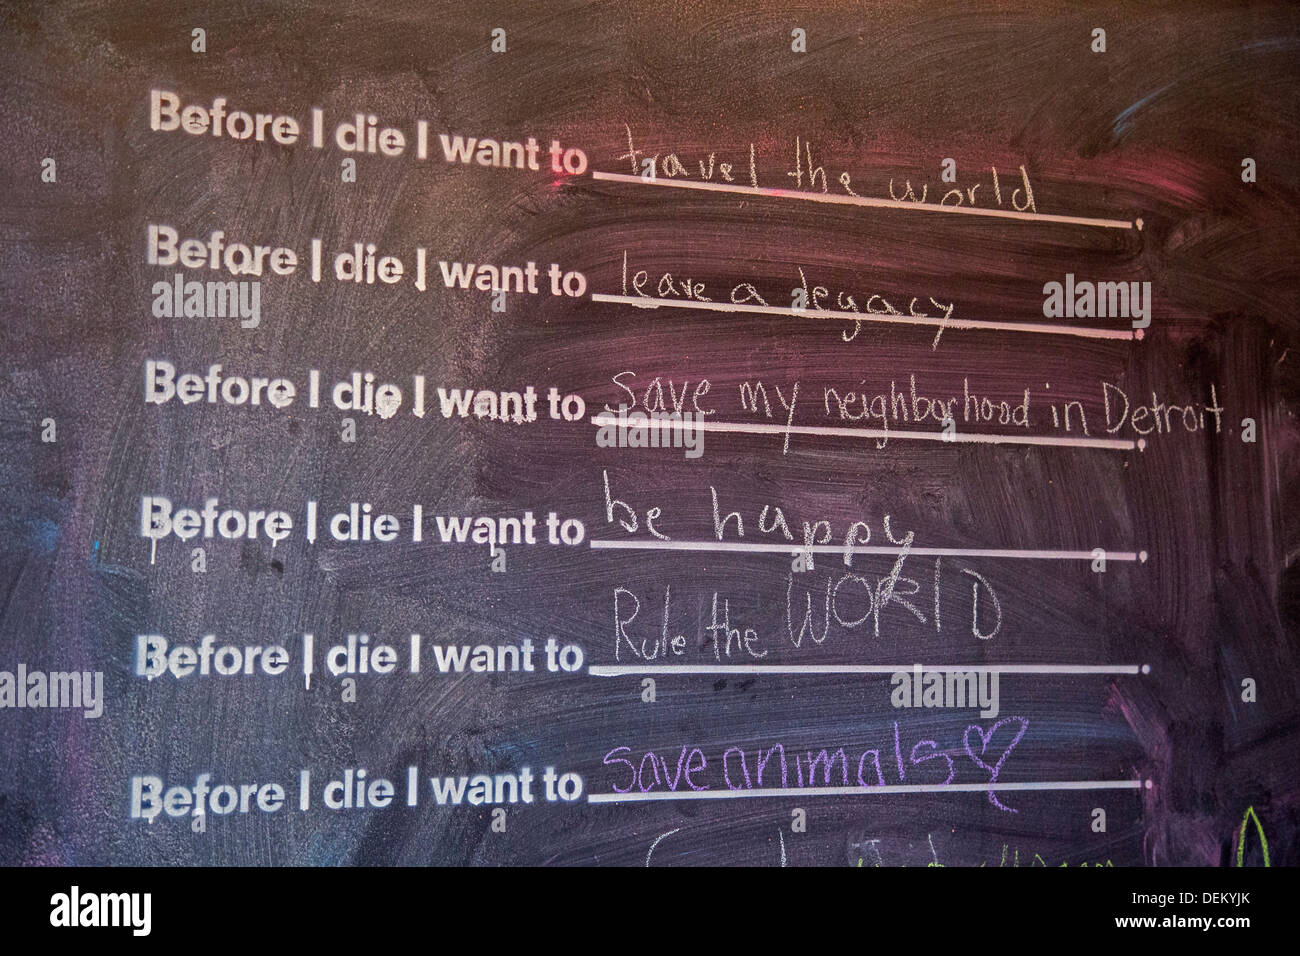 Woodstock, New York - A blackboard at the entrance to Oriole9 restaurant - Stock Image